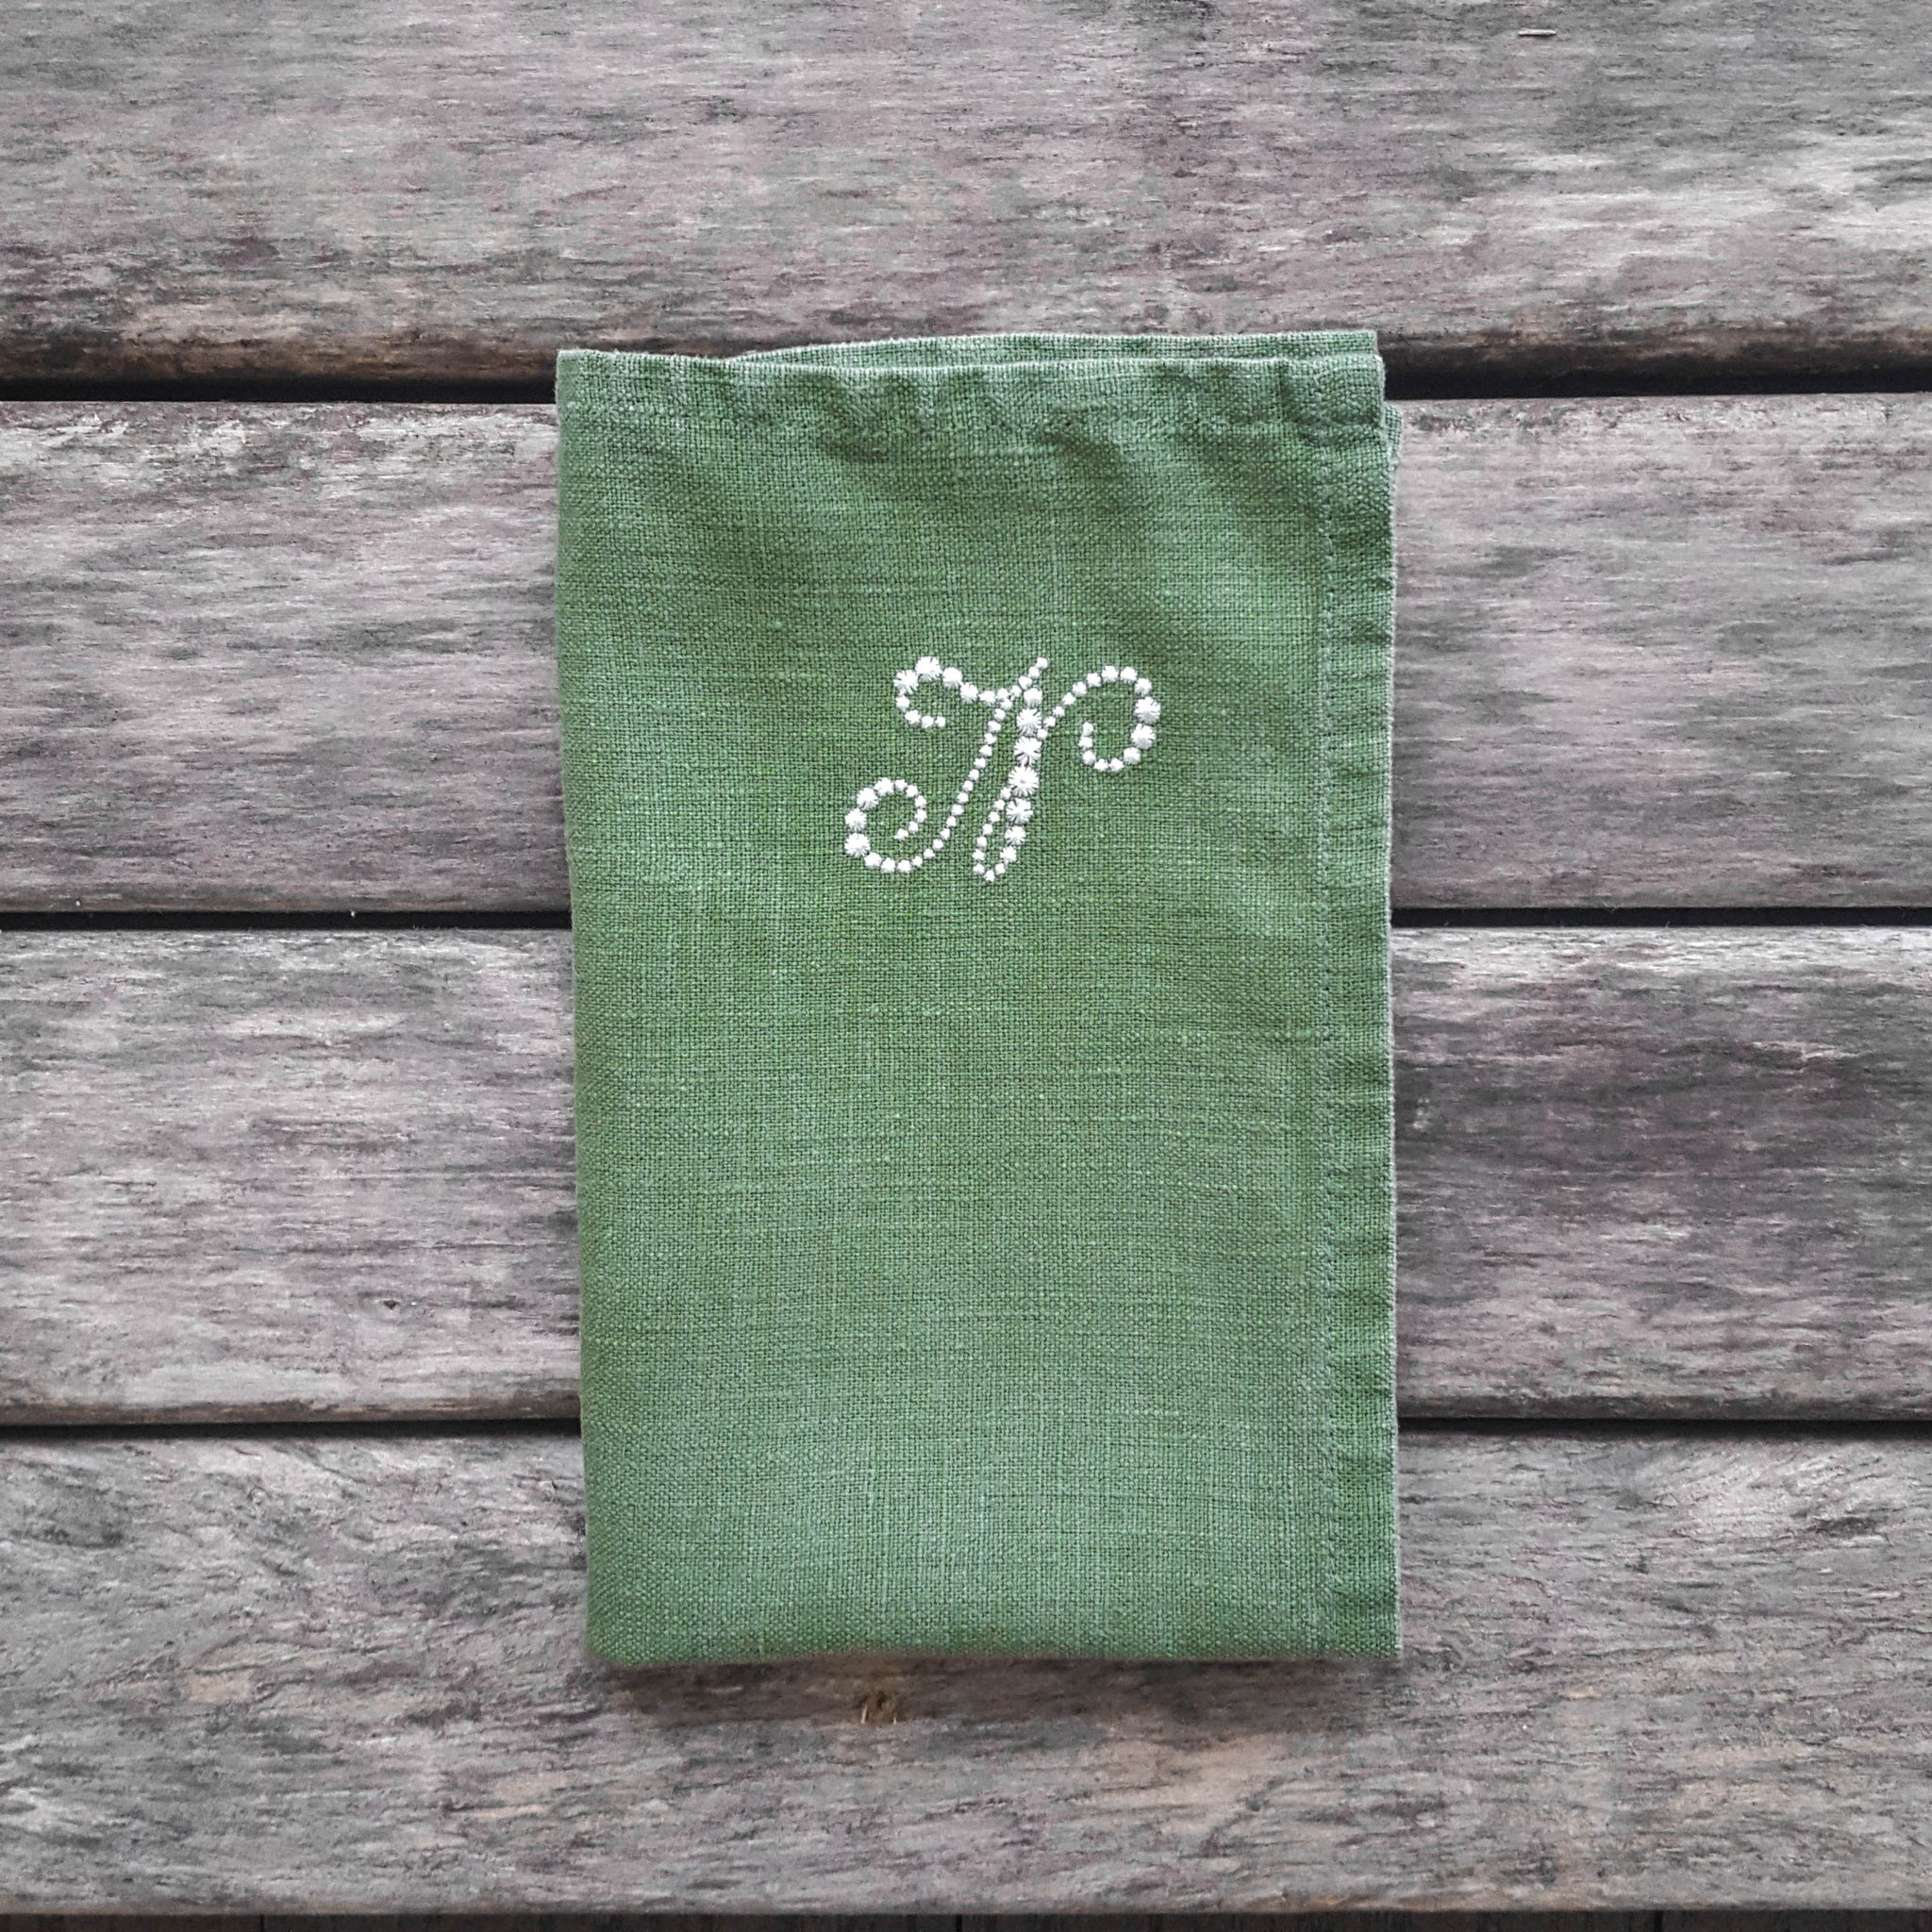 Monogrammed linen napkins in various colors. Stars font.